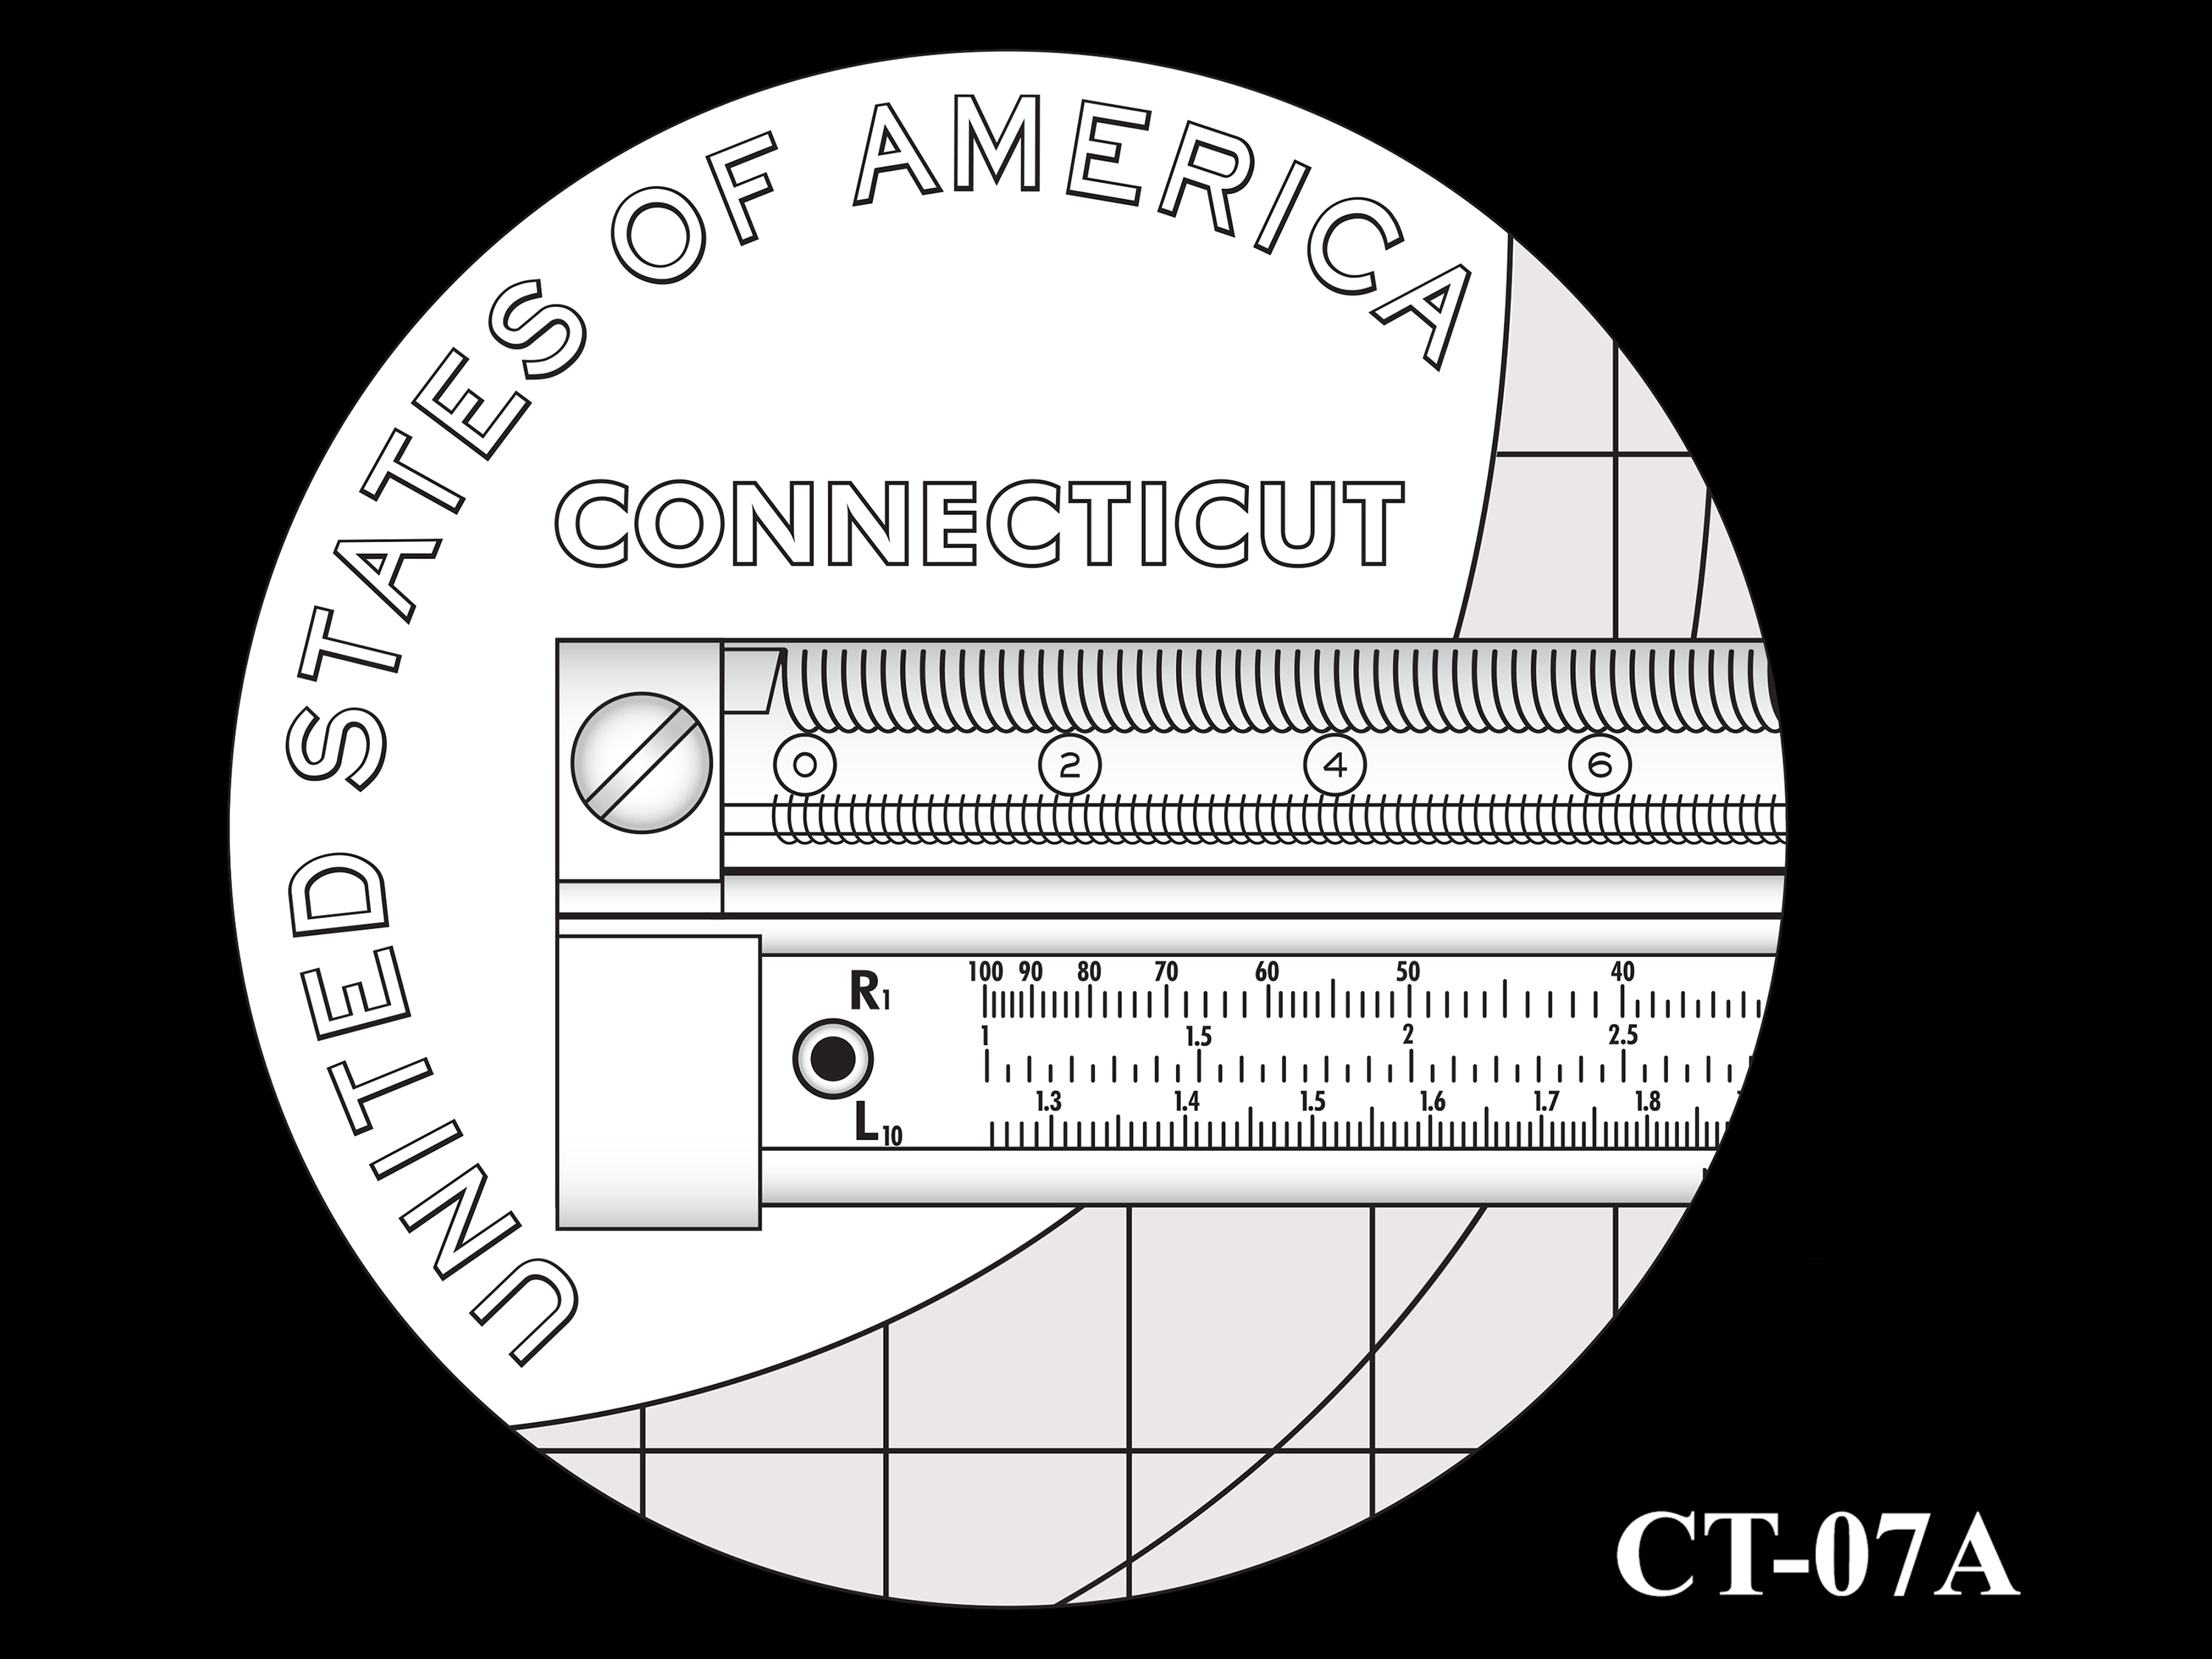 CT-07A -- 2020 American Innovation $1 Coin - Connecticut